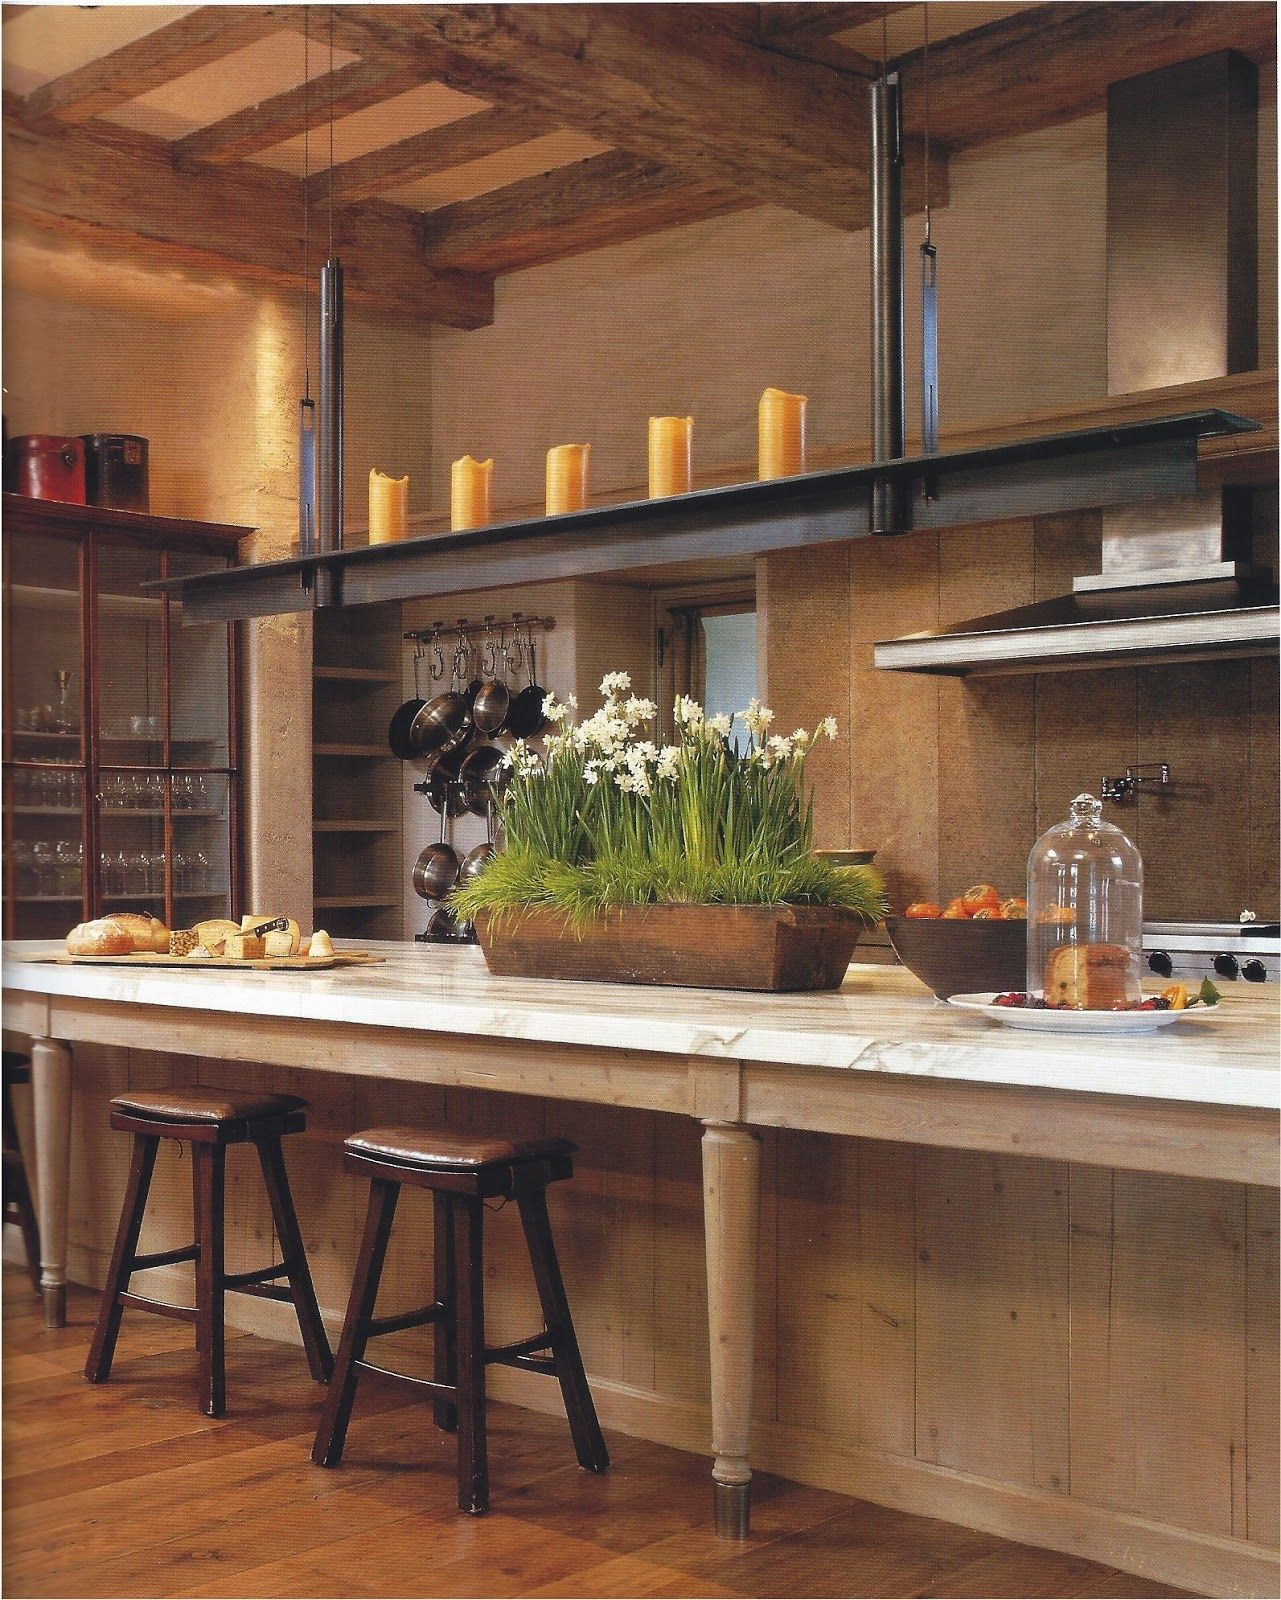 Rustic Open Kitchen: Kitchens, Interiors And